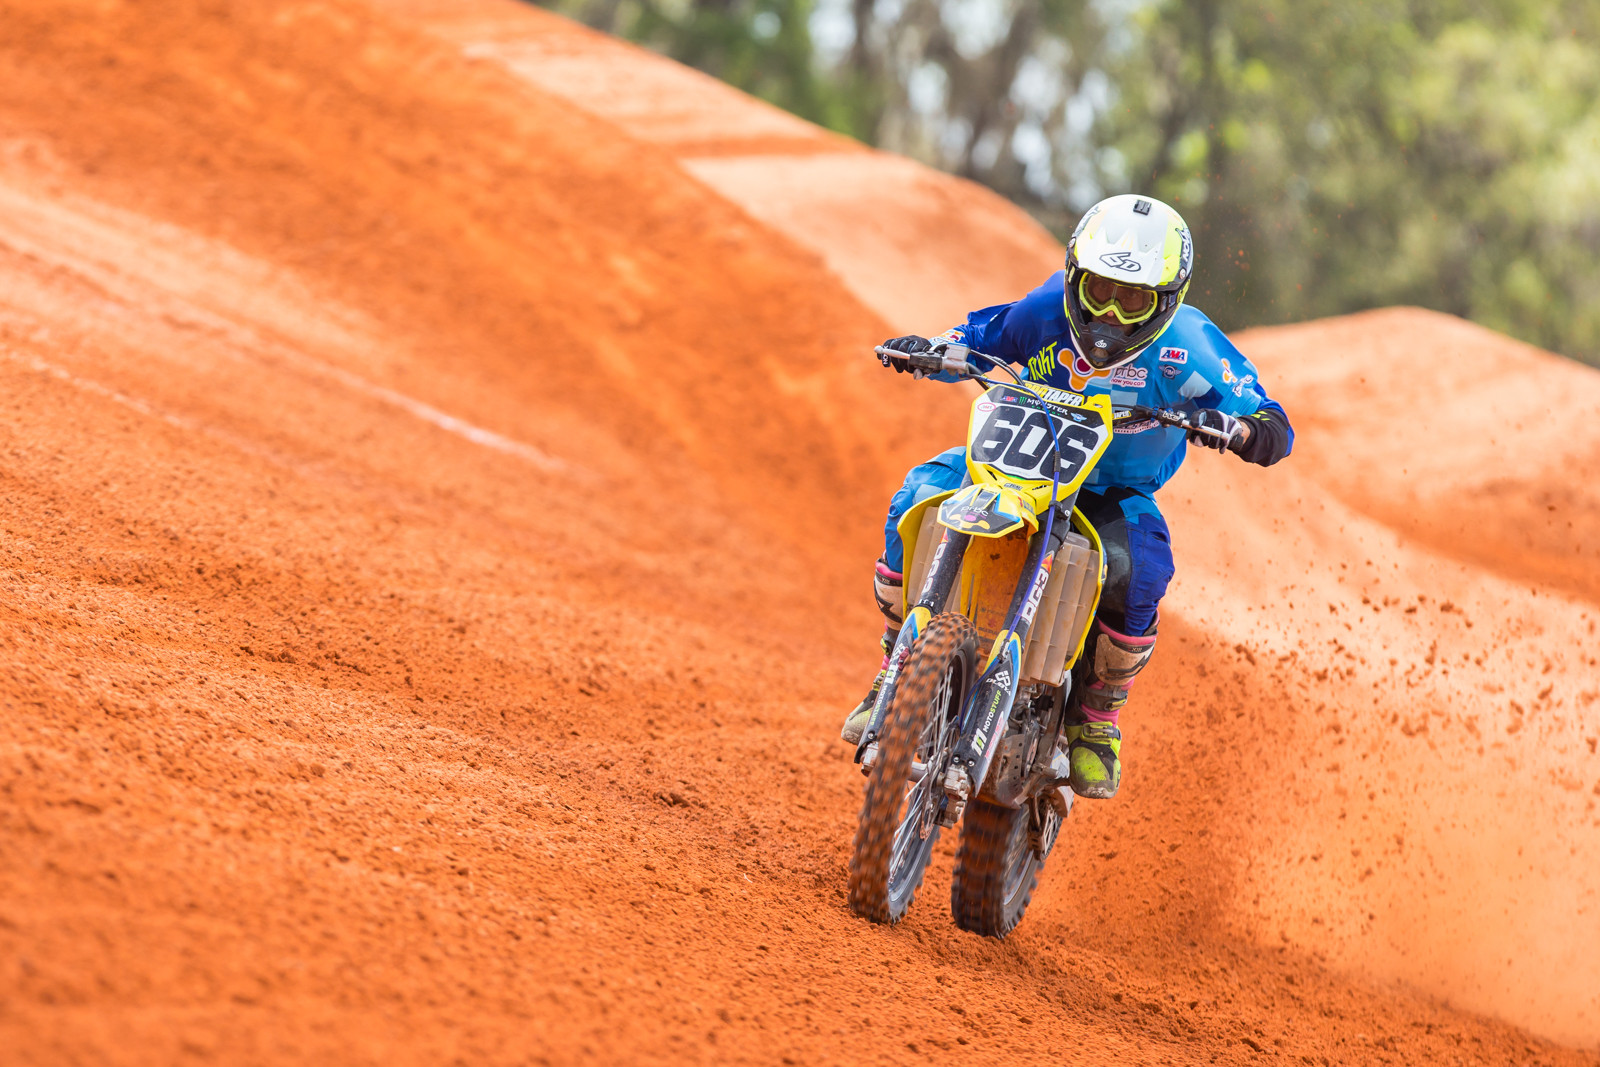 Ronnie Stewart - A Week in Florida Prepping for the Daytona Supercross - Motocross Pictures - Vital MX